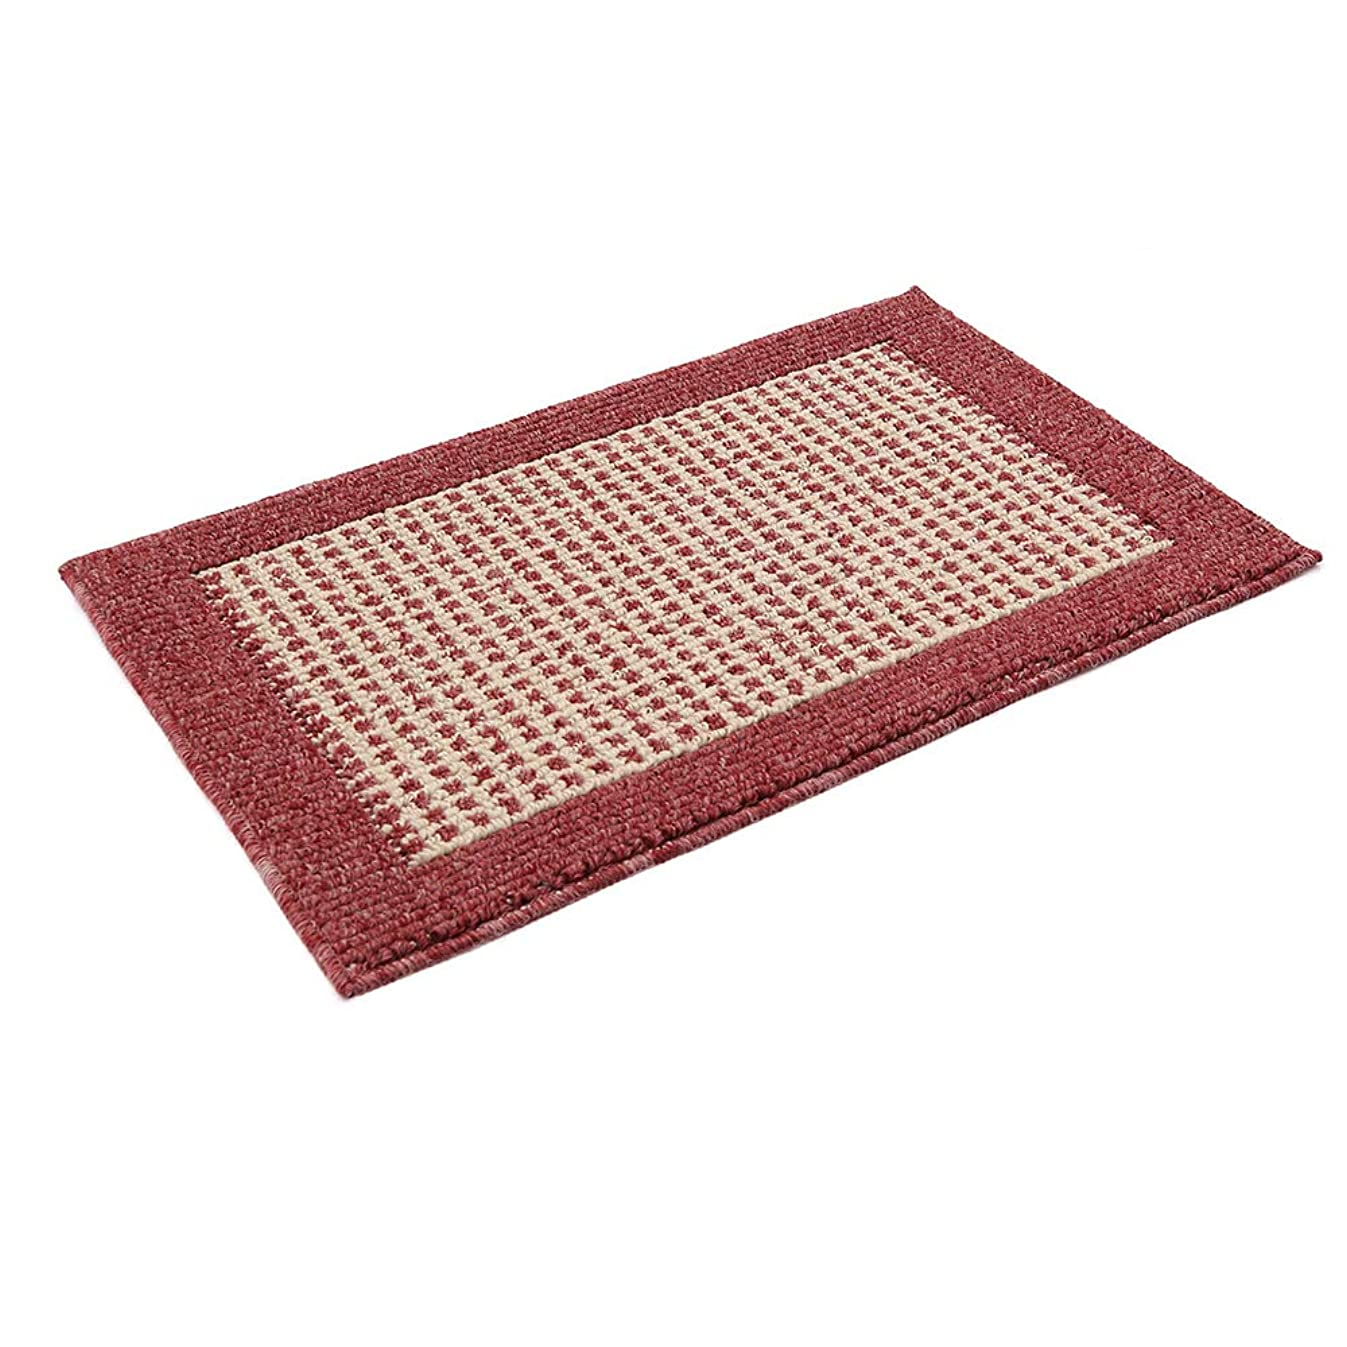 28X18 Inch Anti Fatigue Washable Kitchen Rug Mats are Made of Polypropylene Square Rug Cushion Which is Anti Slippery and Stain Resistance,Red